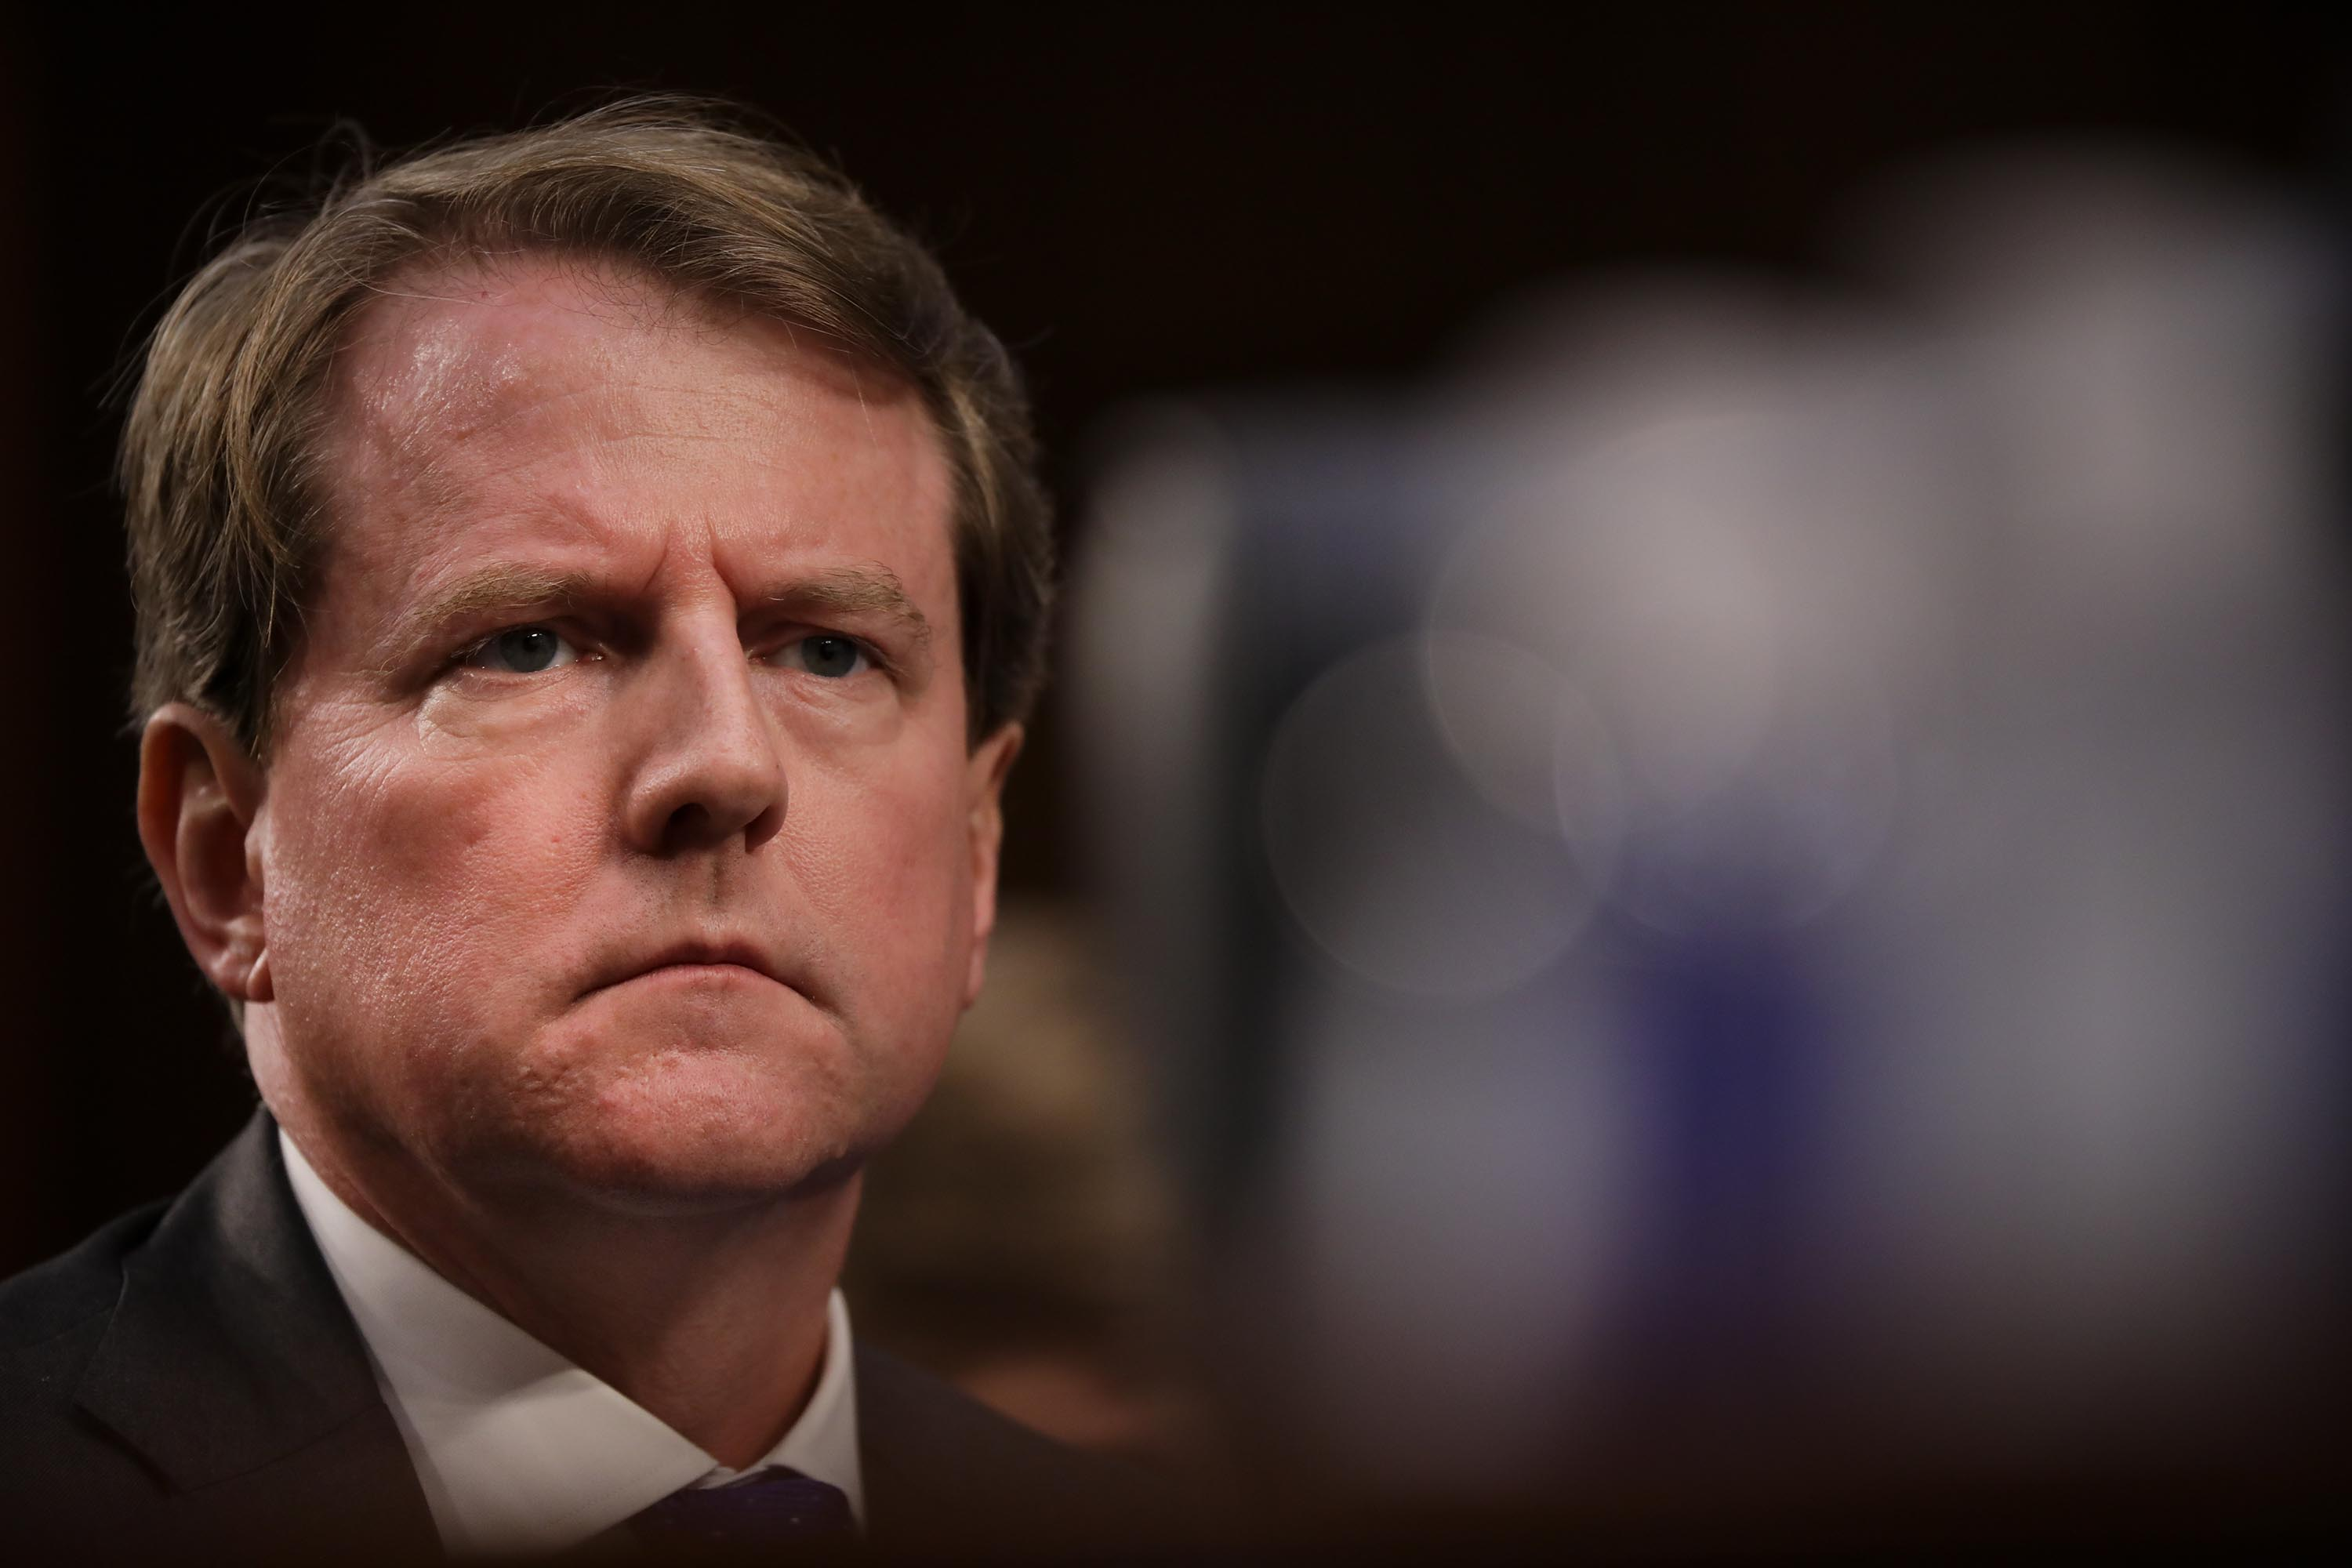 Apple informed former White House counsel Don McGahn and wife that their records were sought by DOJ in 2018